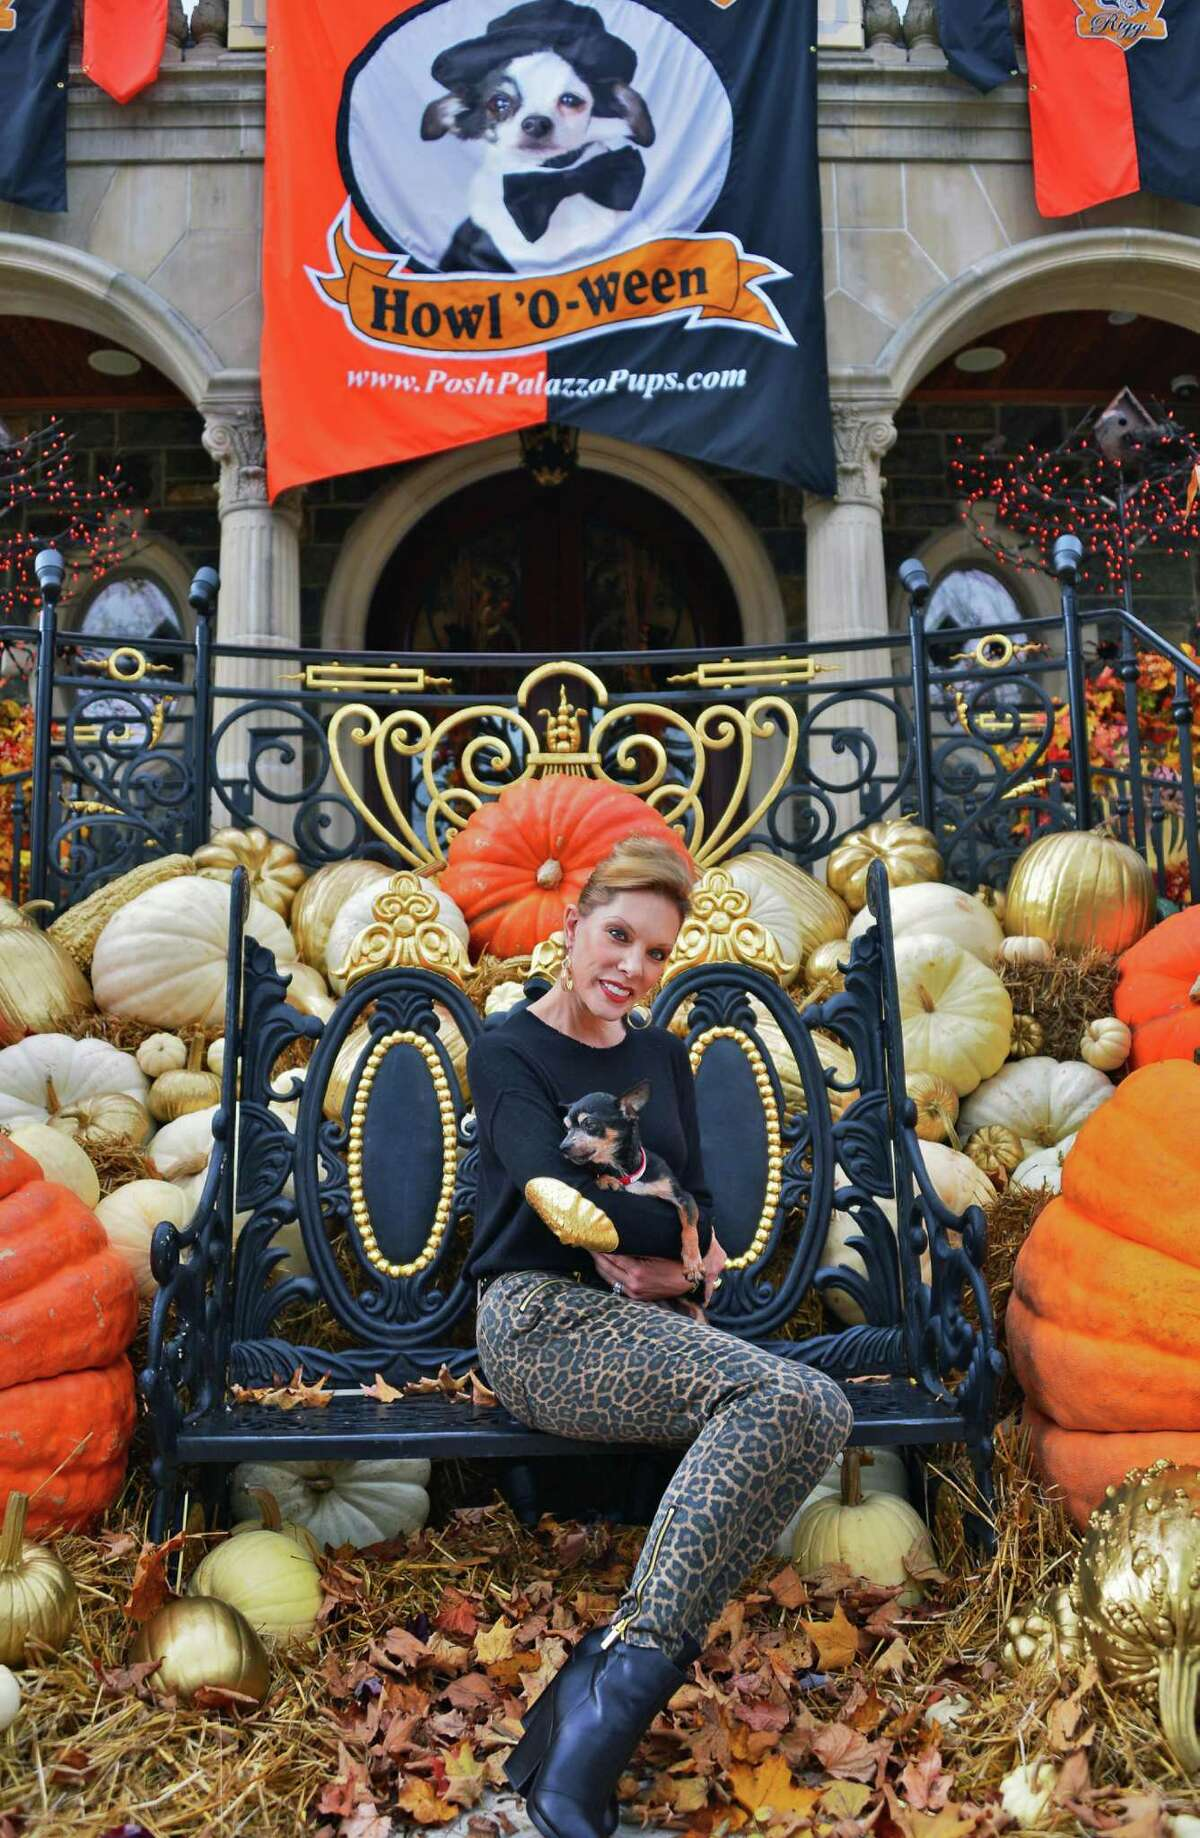 Michele Riggi with her latest rescued dog Rocky in front of her home's elaborate Halloween decorations Thursday Oct. 24, 2013, in Saratoga Springs. (John Carl D'Annibale / Times Union)